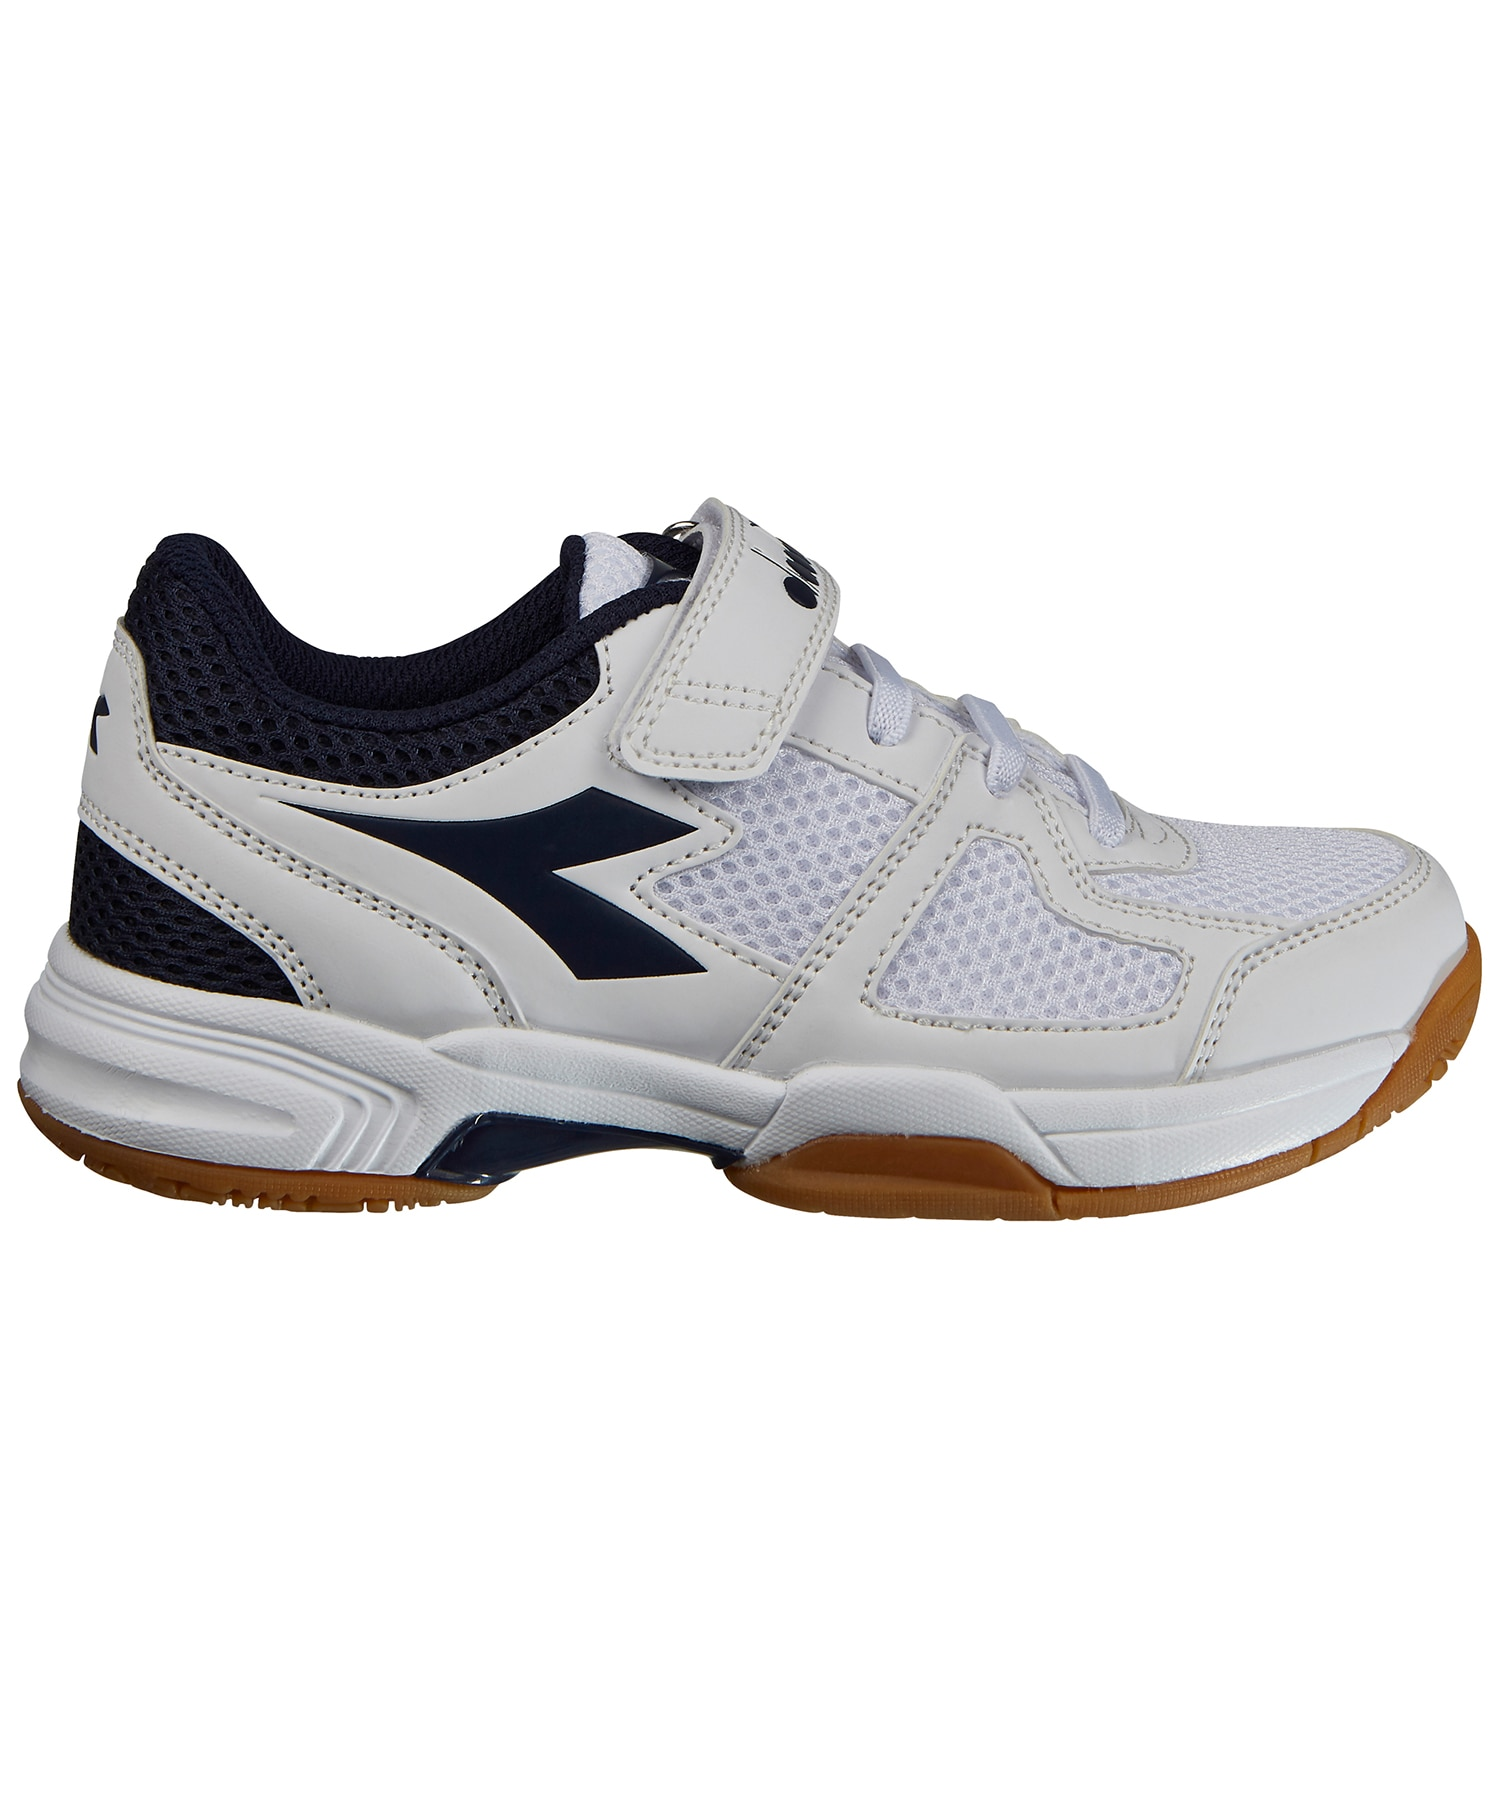 Diadora Speed Fly jr